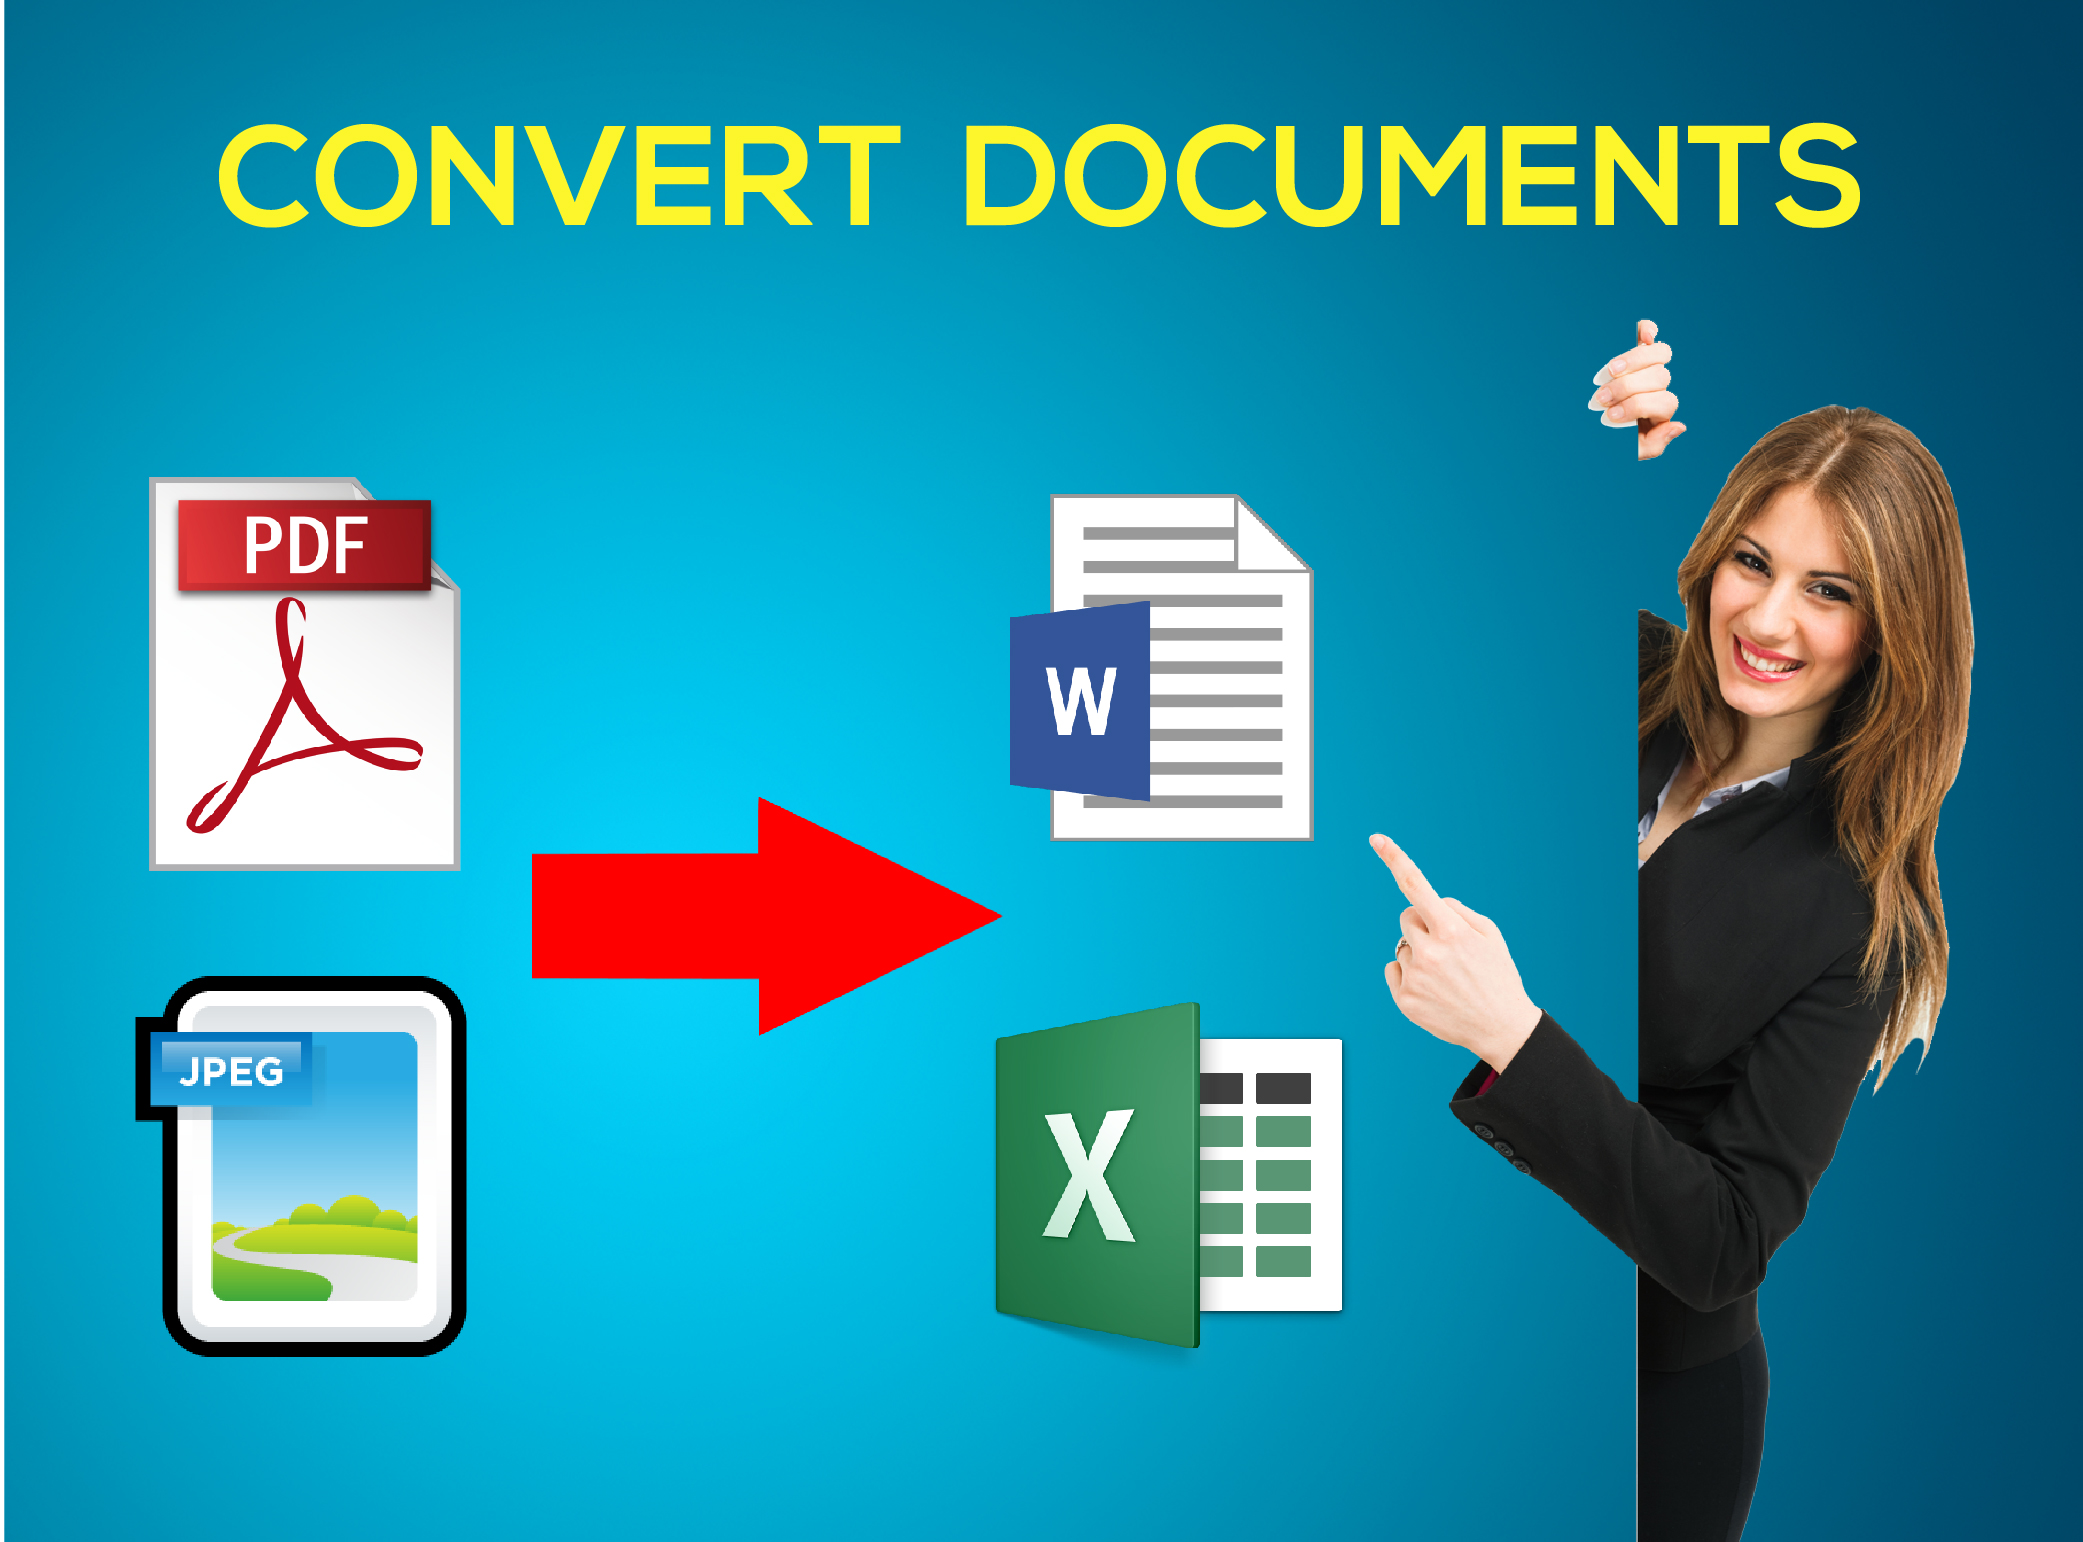 Convert Pdf or Jpeg files to Word or Excel